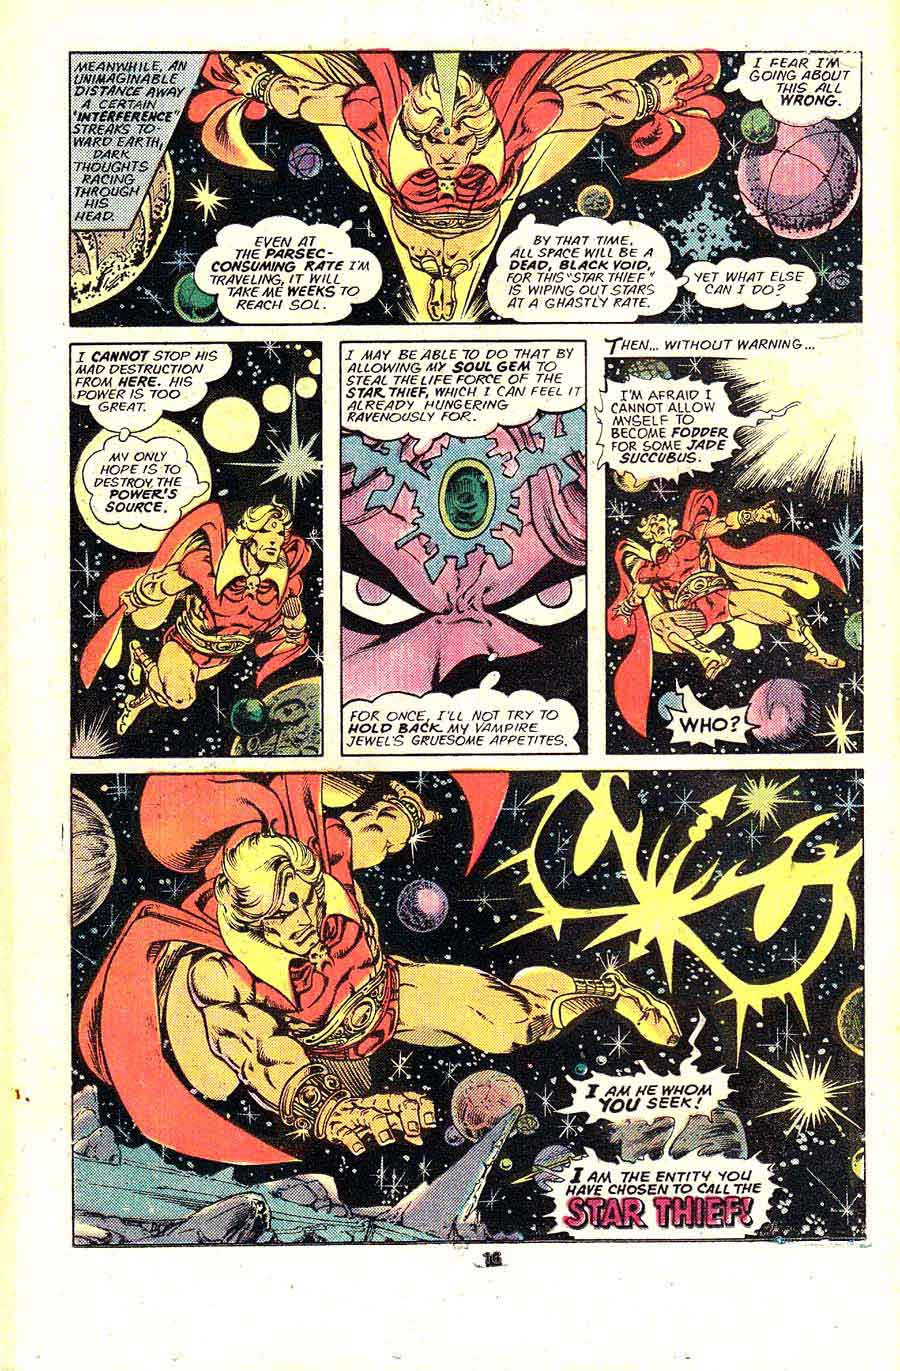 Warlock v1 #13 marvel 1970s bronze age comic book page art by Jim Starlin